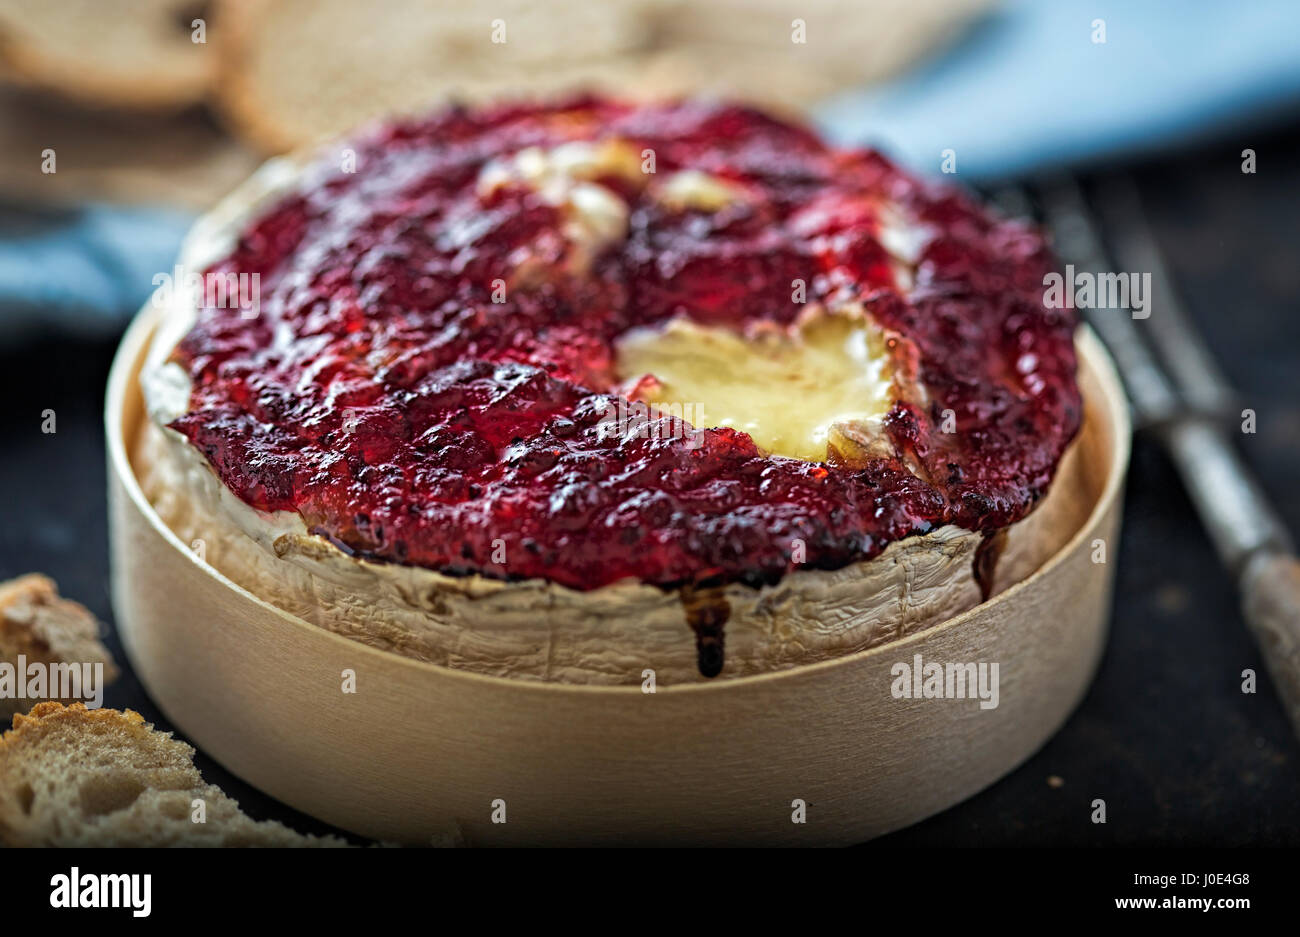 Baked camembert with cranberry sauce - Stock Image